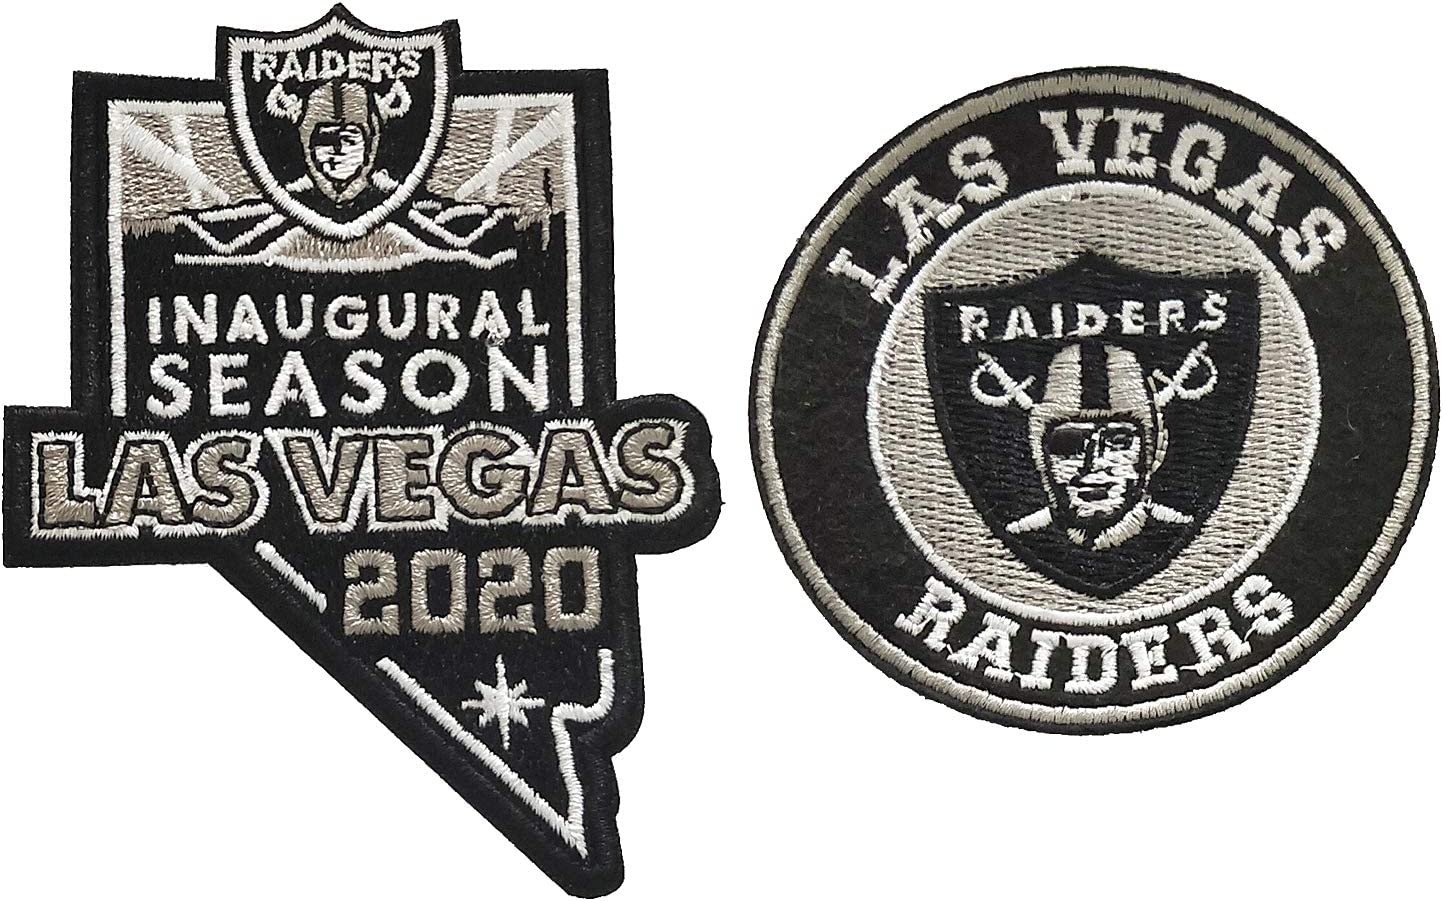 2020 Inaugural Season Tactical Hook-Backed Morale Patch Football Team Logo Jersey Janhop 2pcs Compatible Raiders Patch